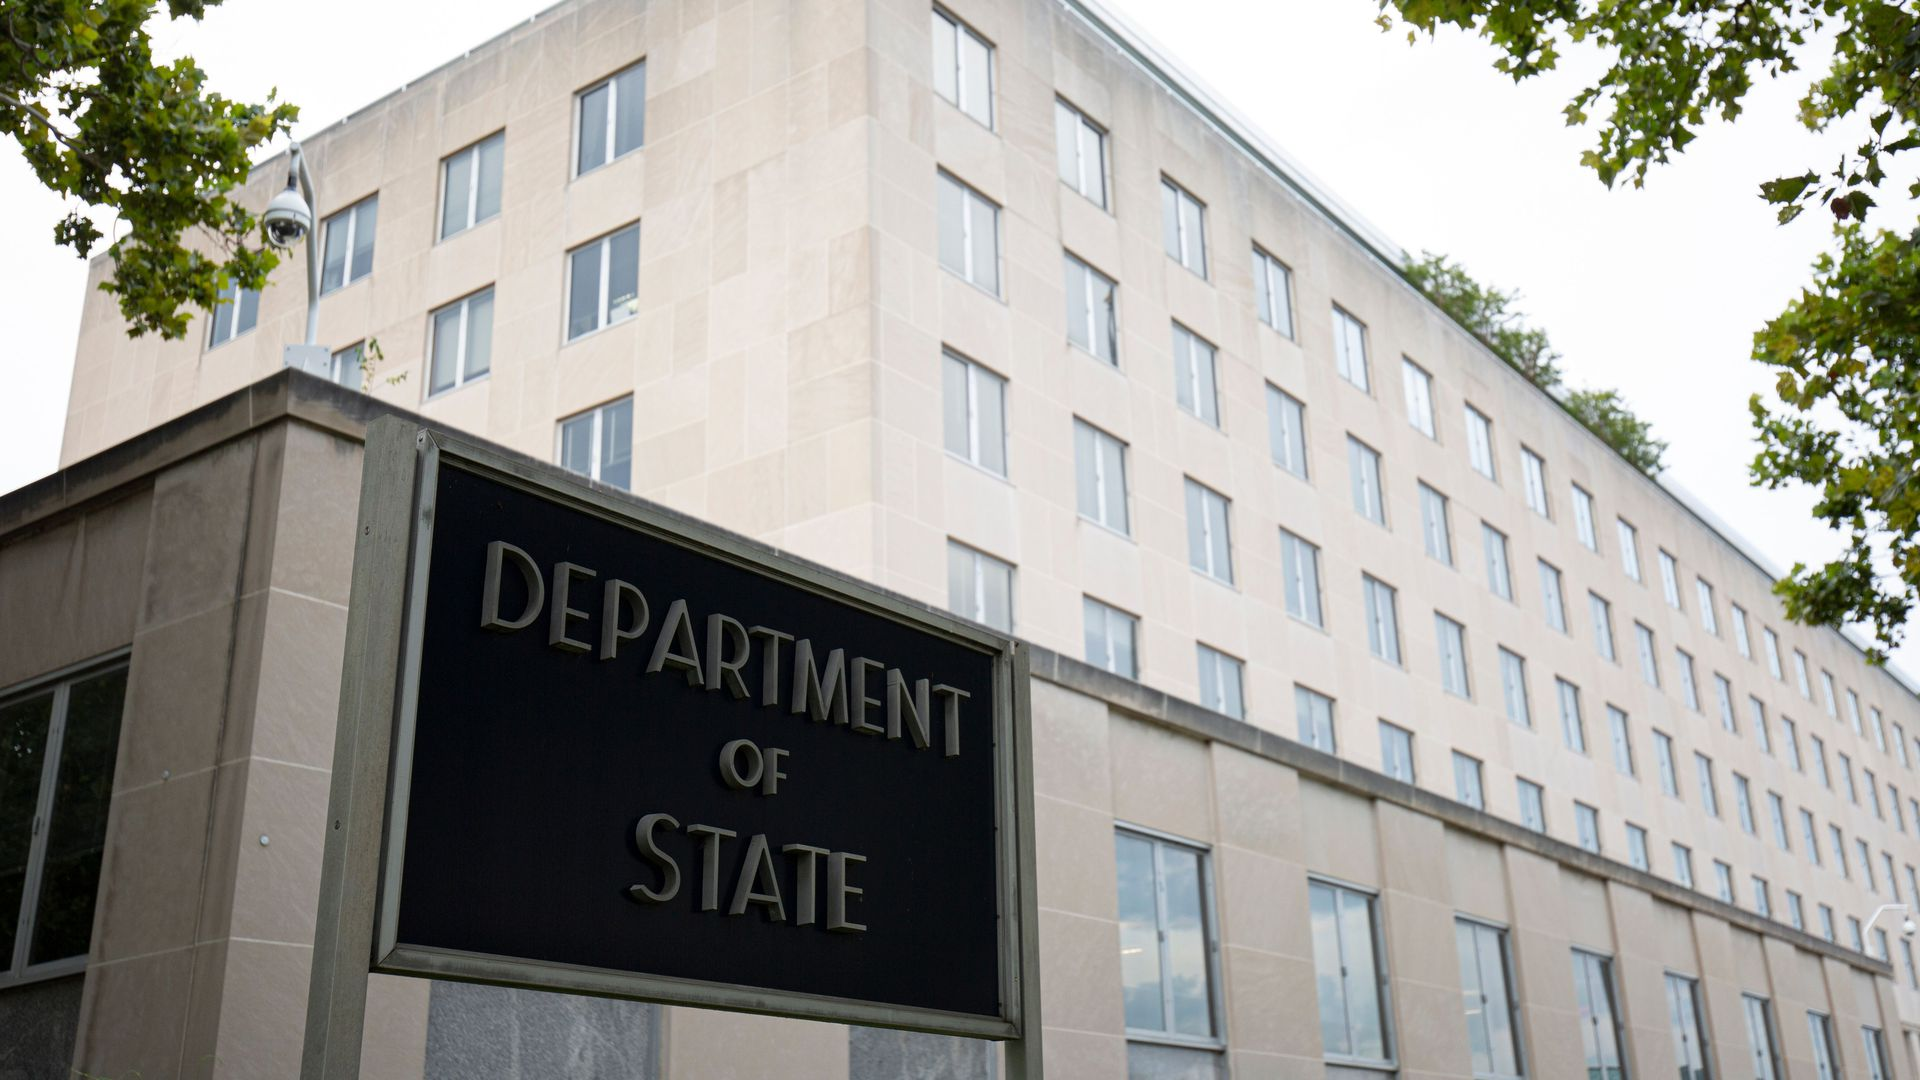 The state department building.